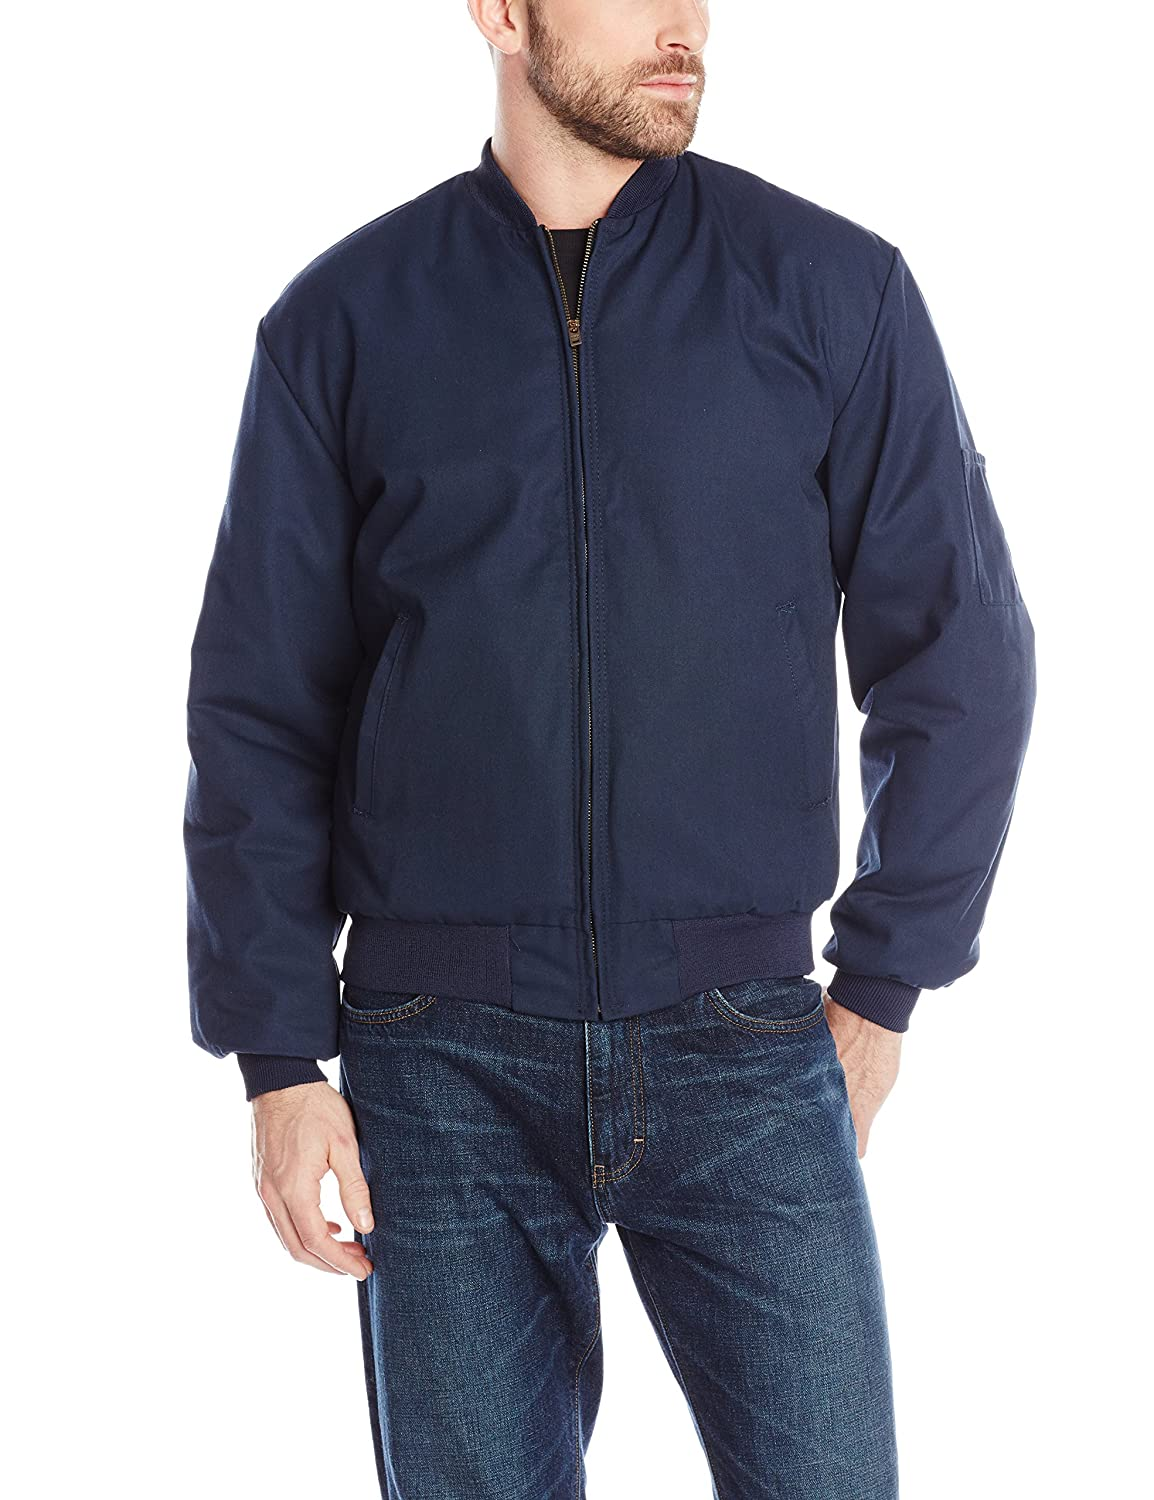 c321ca363 Red Kap Men's Solid Team Jacket with Insulated Zip-Out Liner